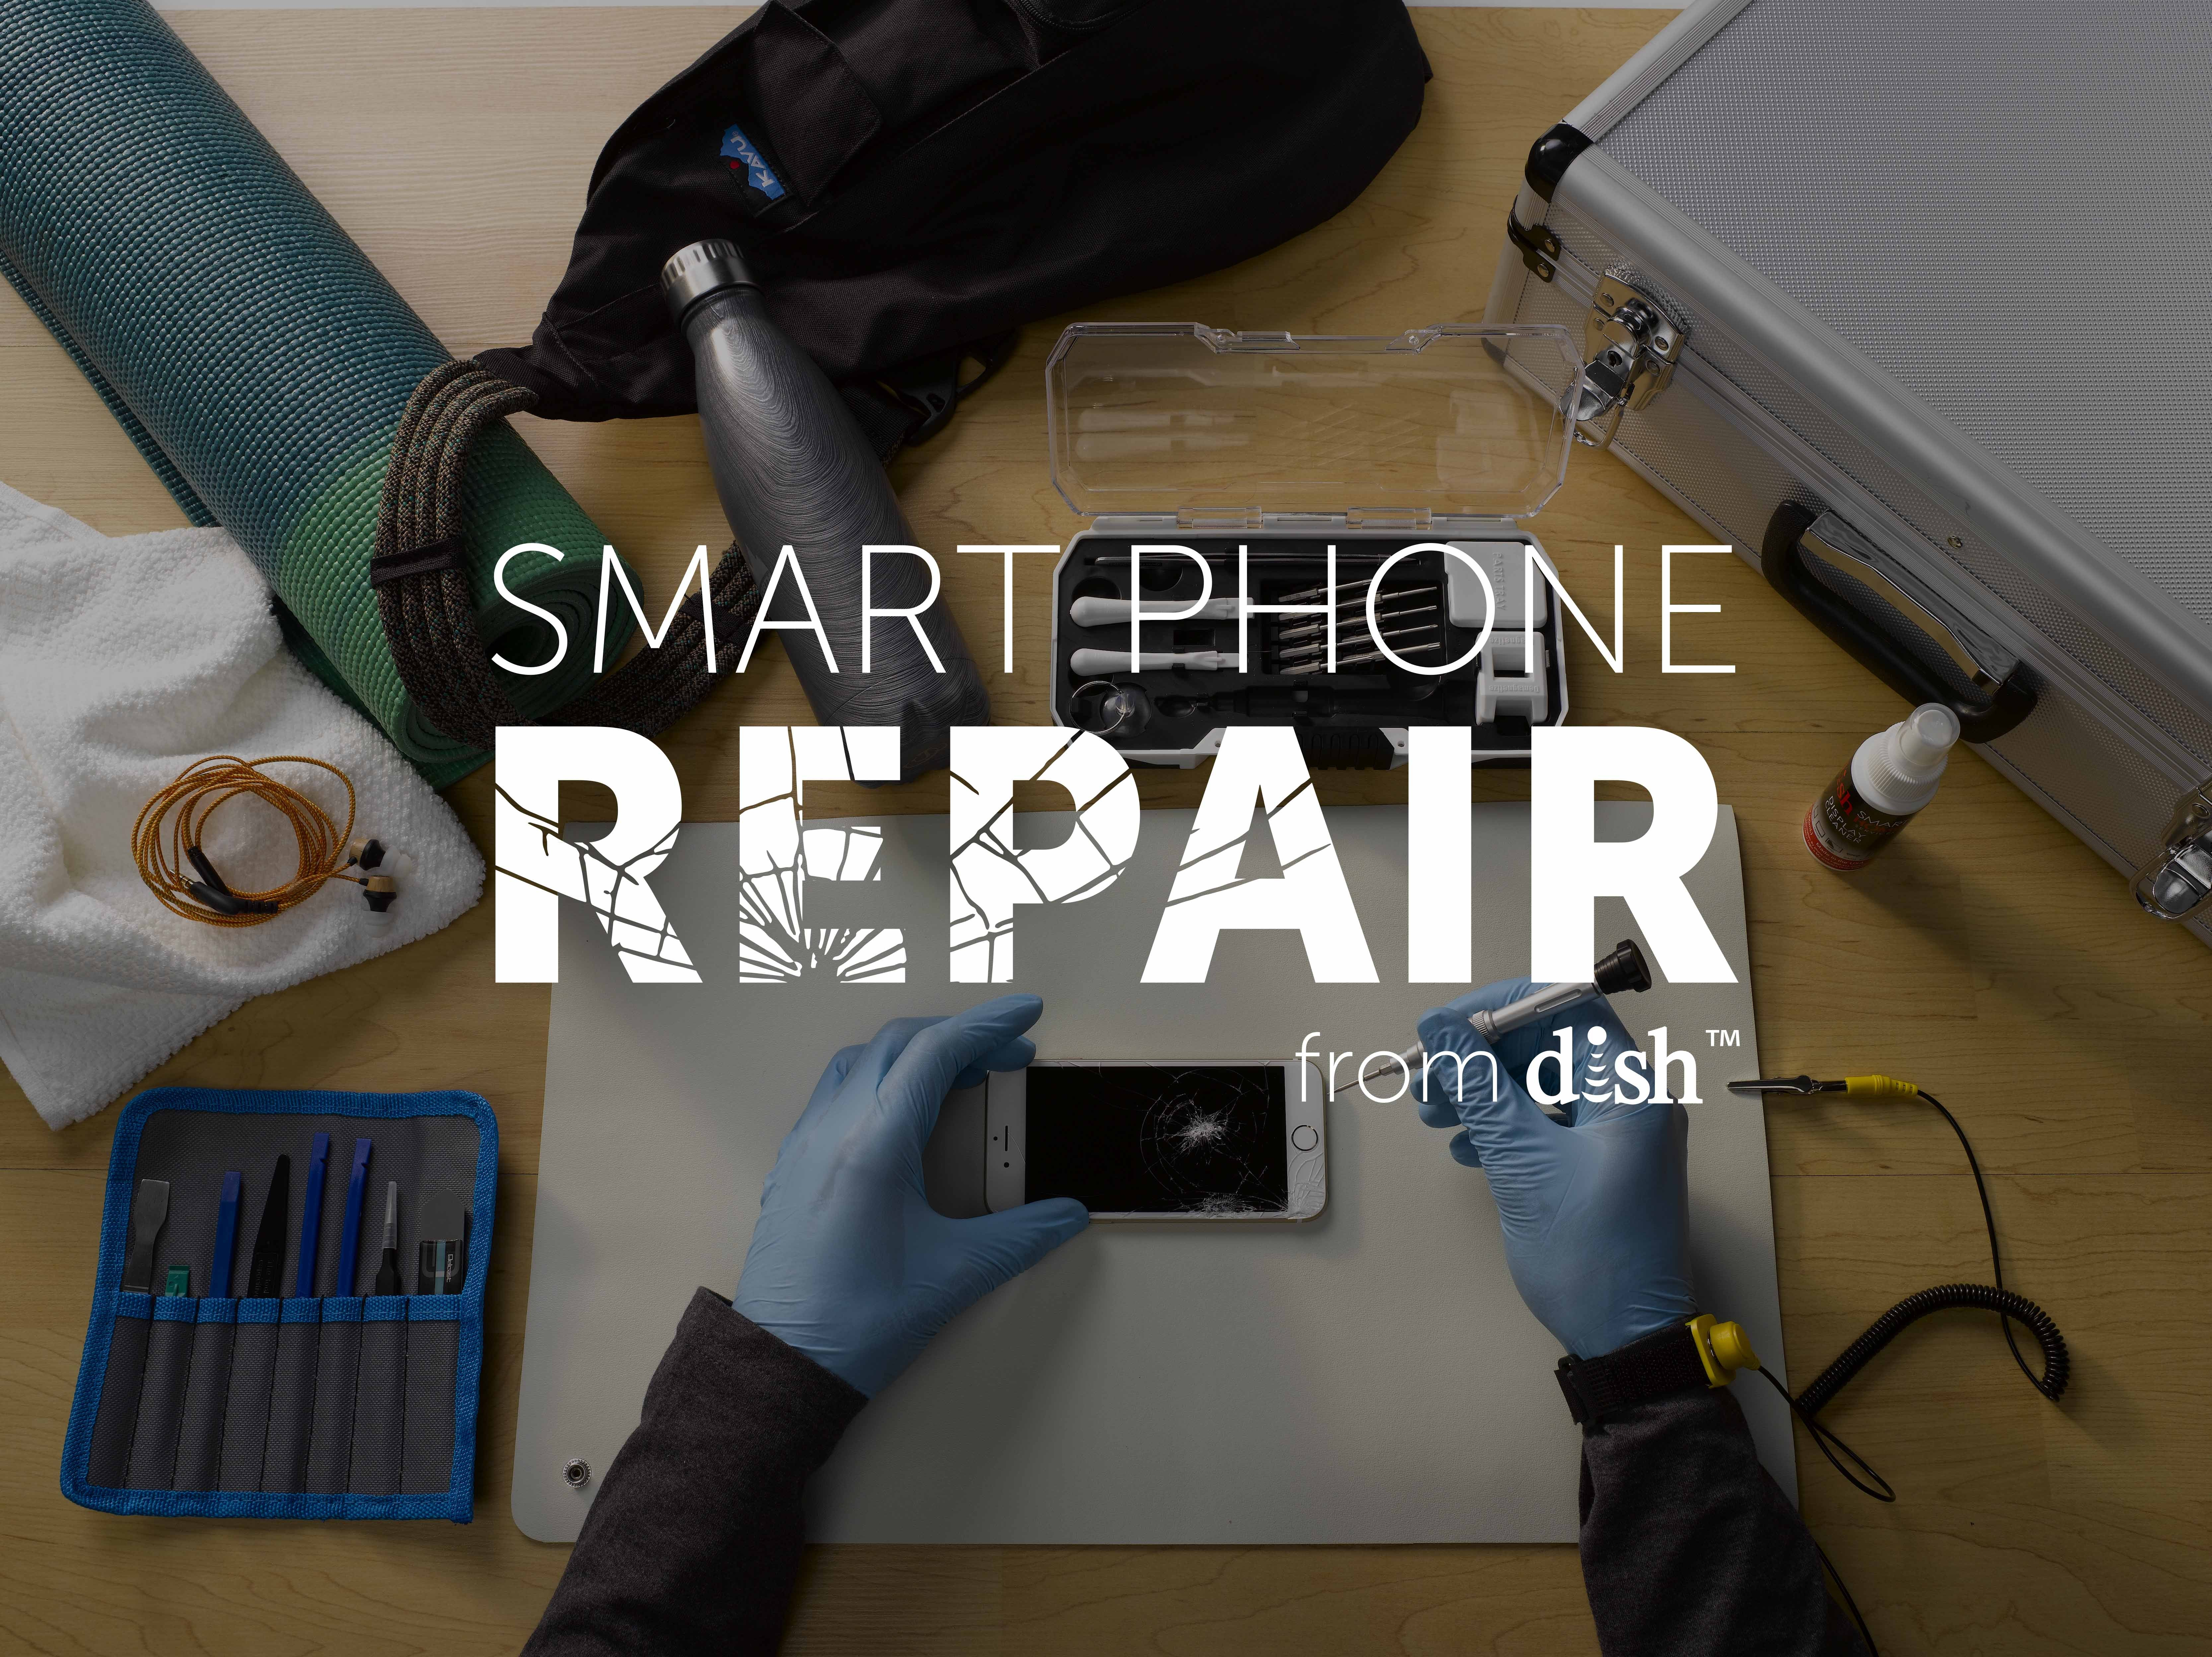 Telephone Repair Service : Dish delivers 'smart phone repair on your turf about